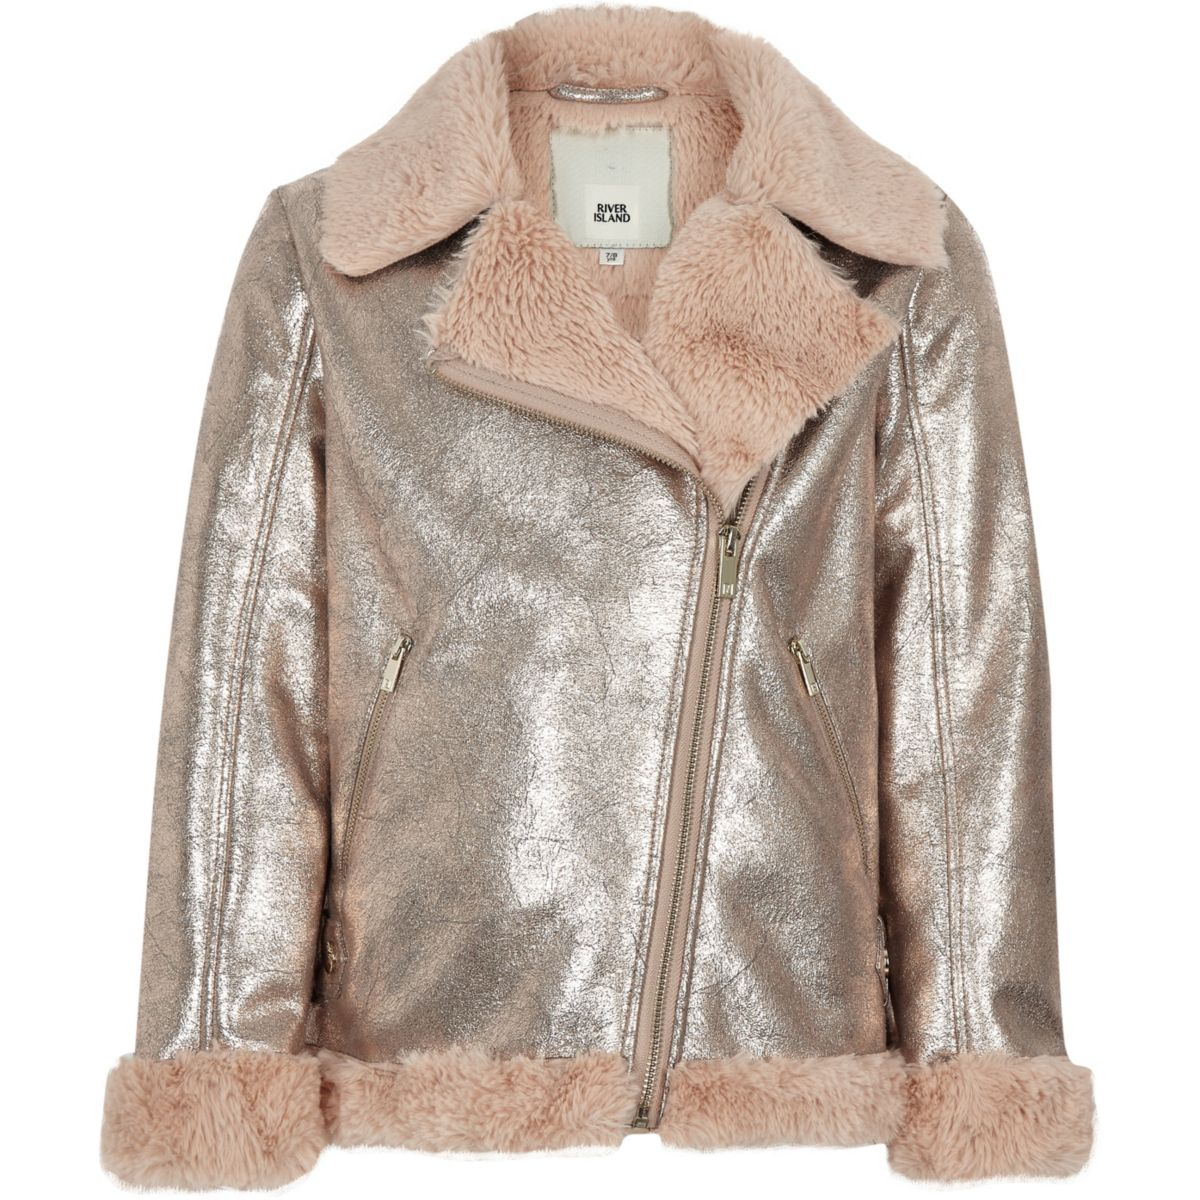 Girls gold metallic faux fur aviator jacket